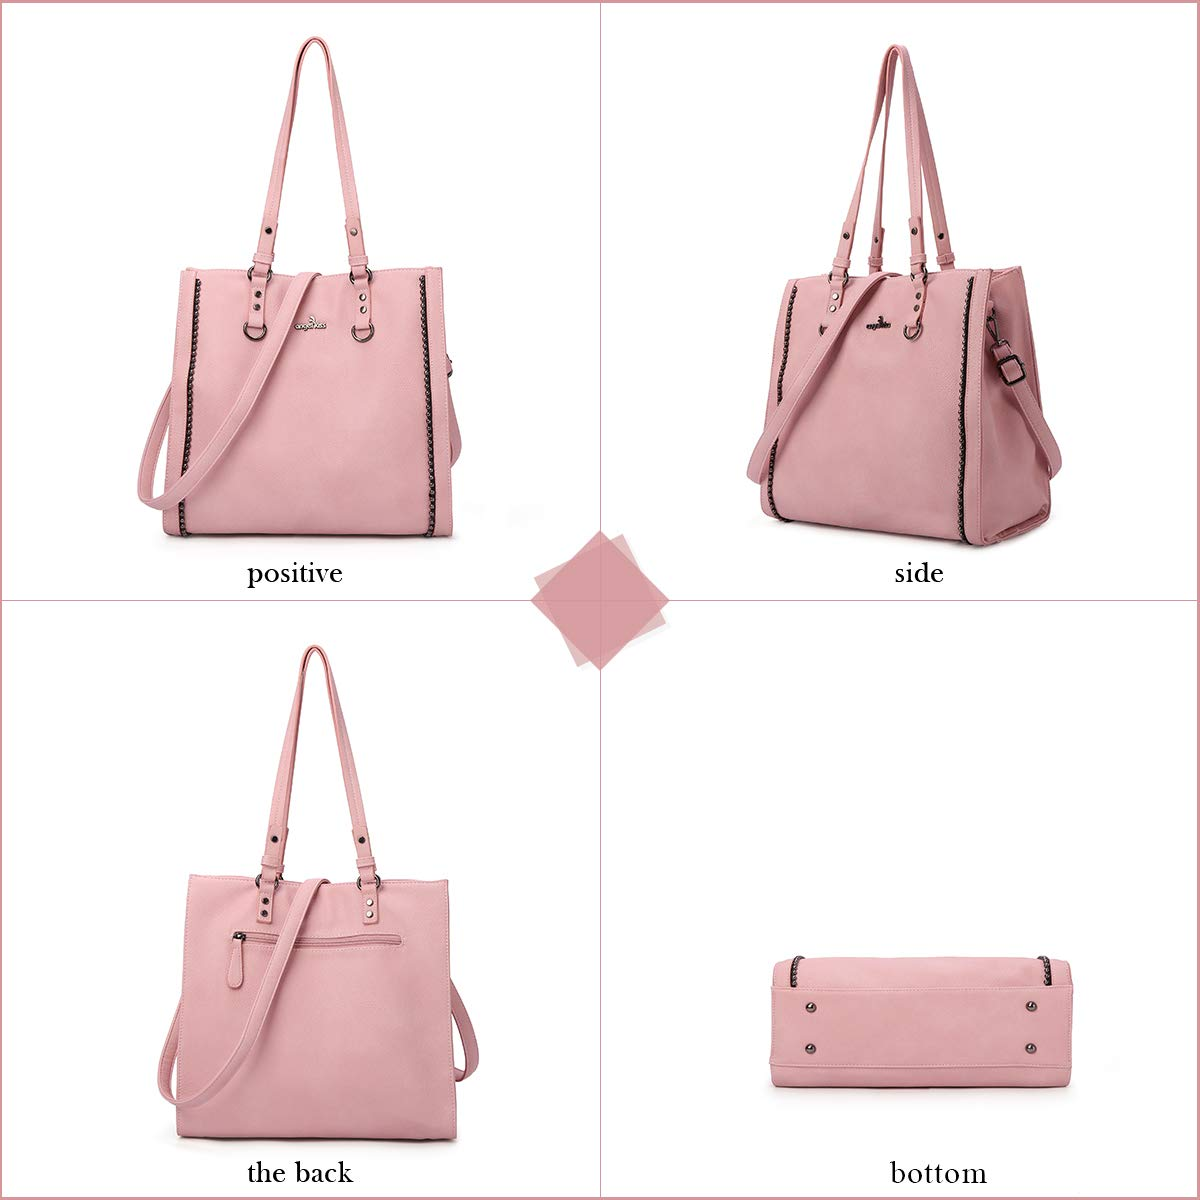 Angelkiss Womens Soft PU Leather Classic Tote Bag Top Handle Shoulder Handbags and Purses with Zipper